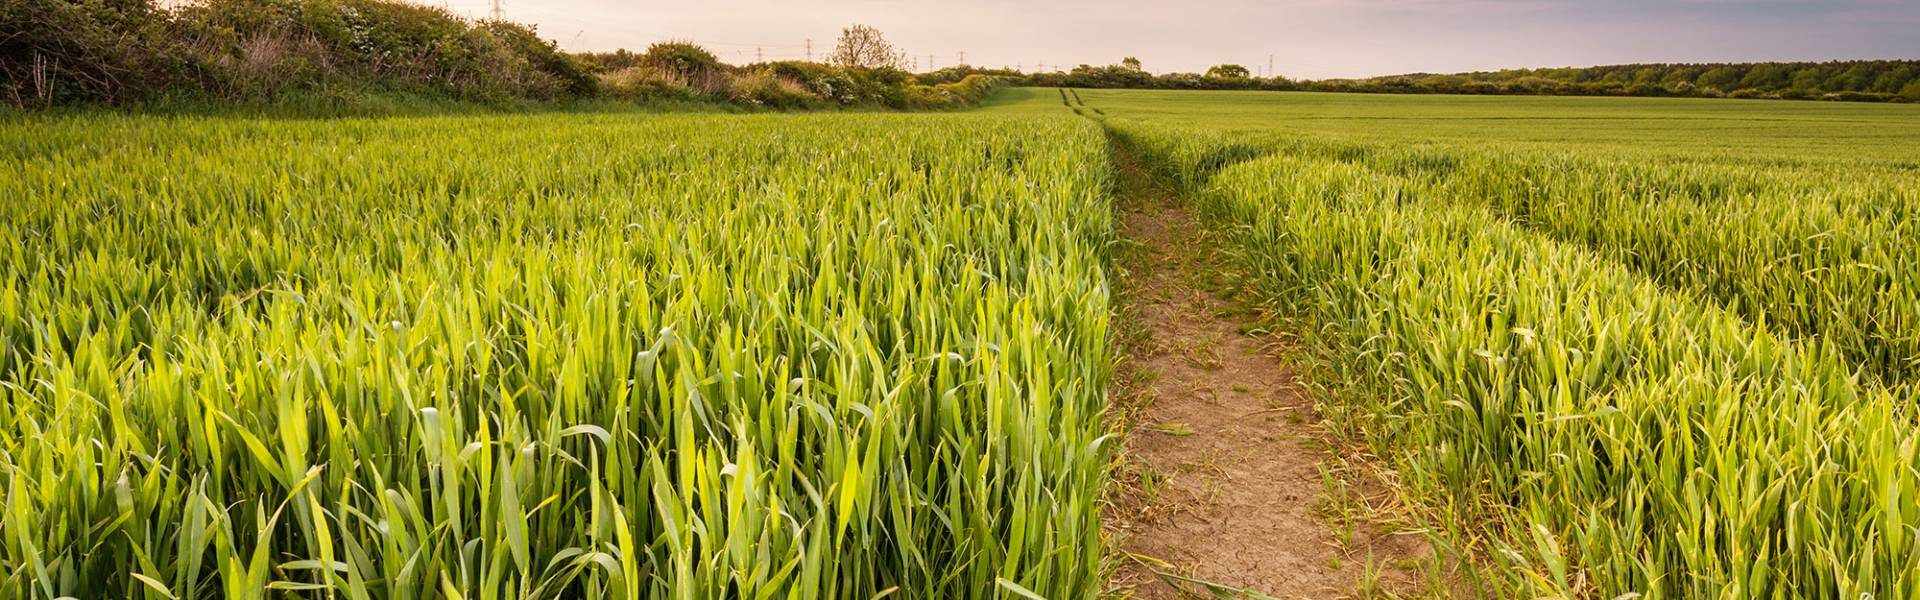 Over 3,000 acres of arable land